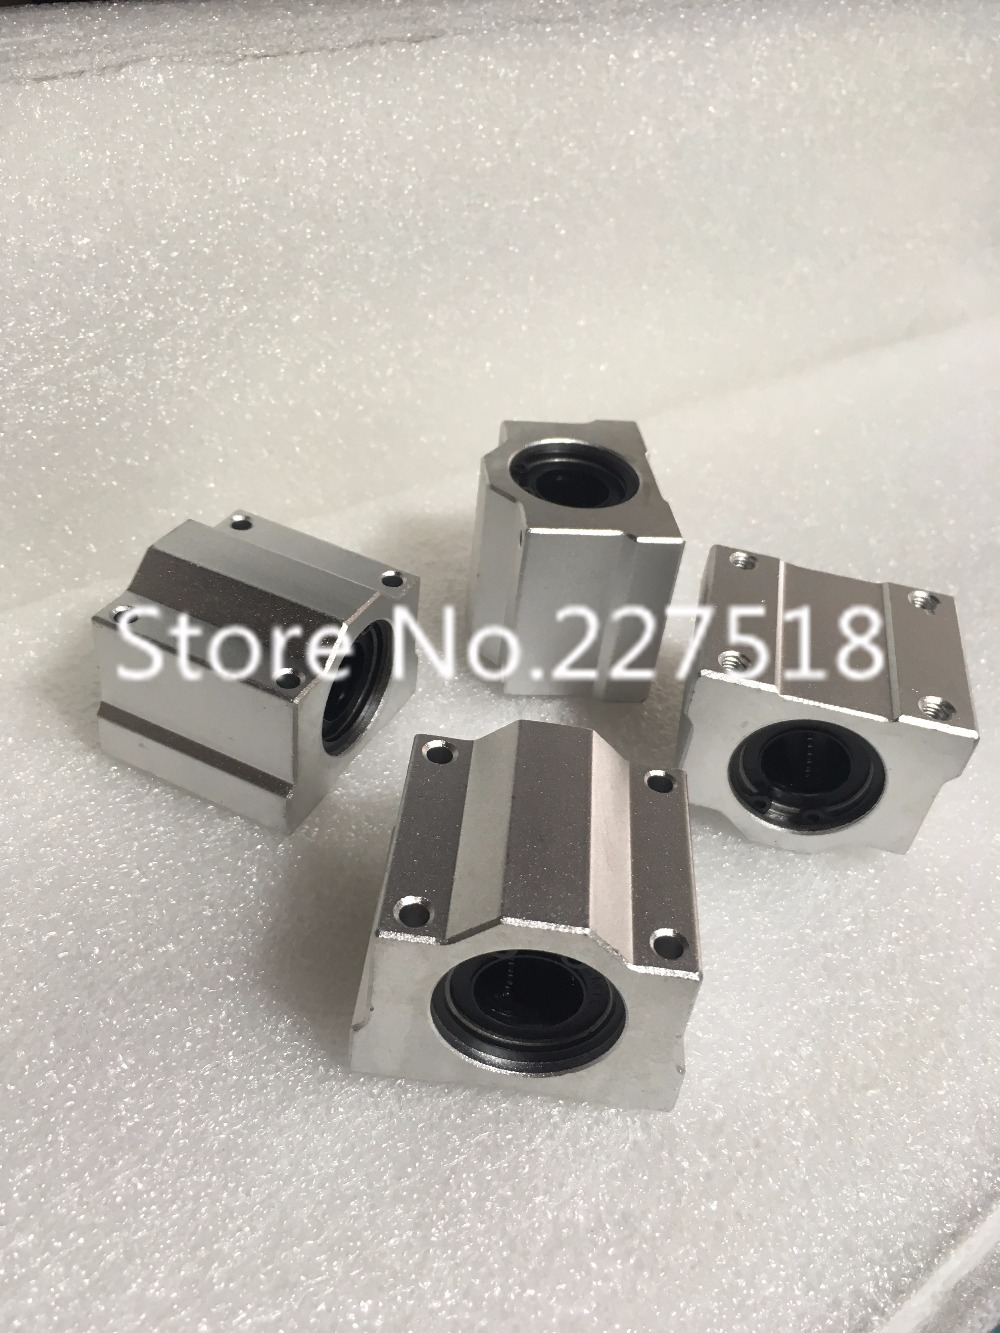 4pcs SCS25UU 25mm linear guide Linear axis ball bearing block with LM25UU bush, pillow block linear unit for CNC part 1pc scs50uu 50mm linear guide linear axis ball bearing block with lm50uu bush pillow block linear unit for cnc part